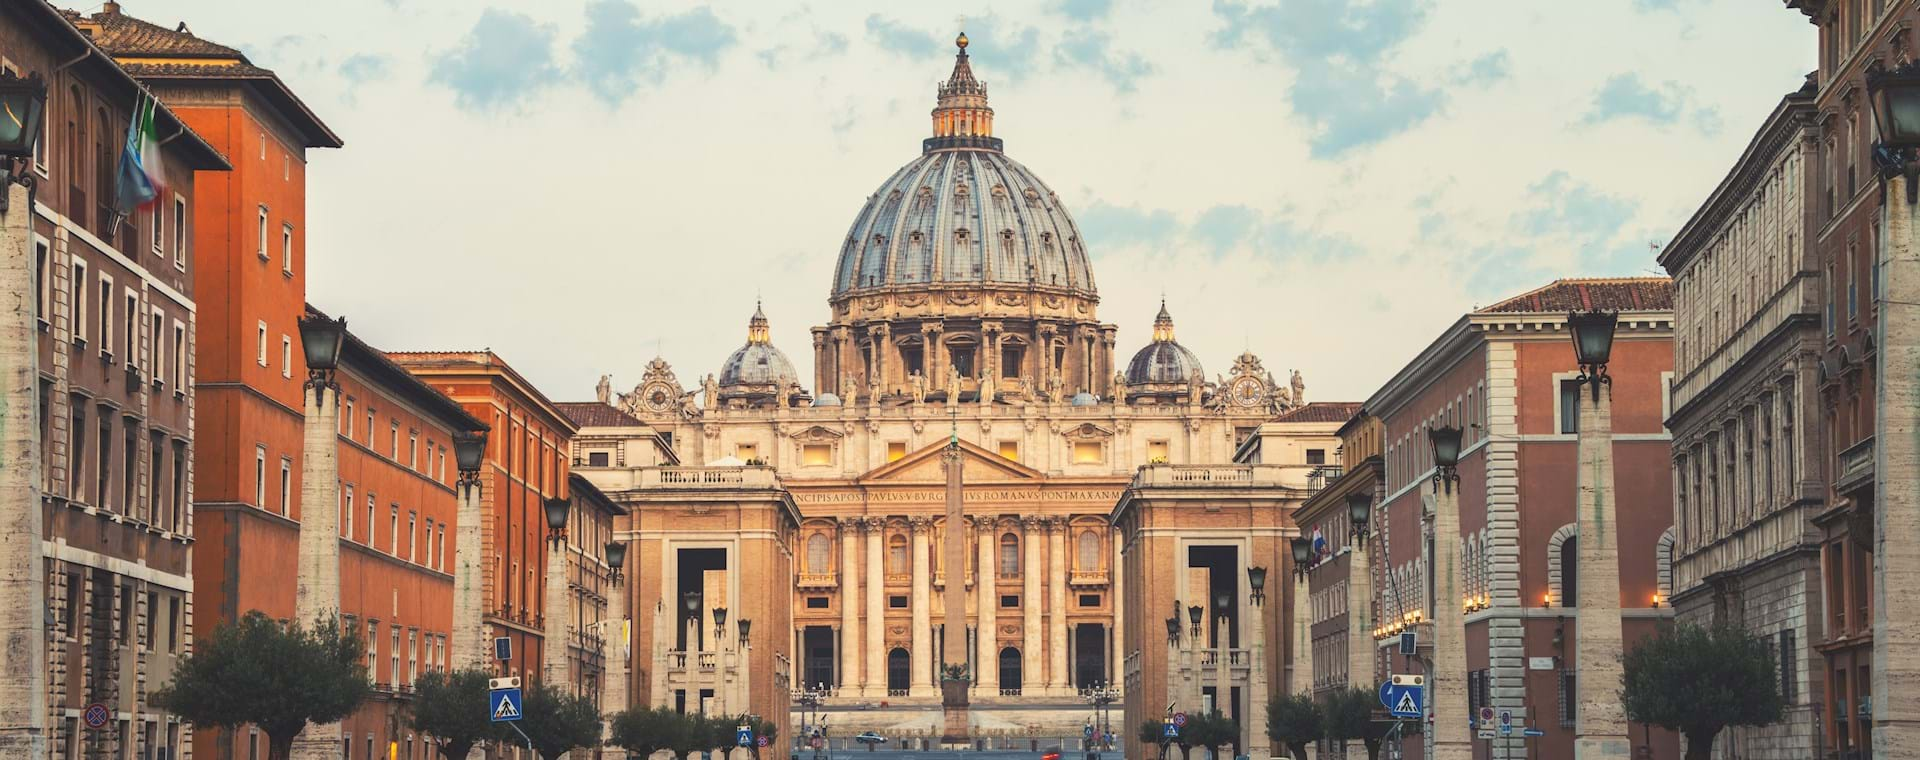 St. Peter's Basilica cloudy weather